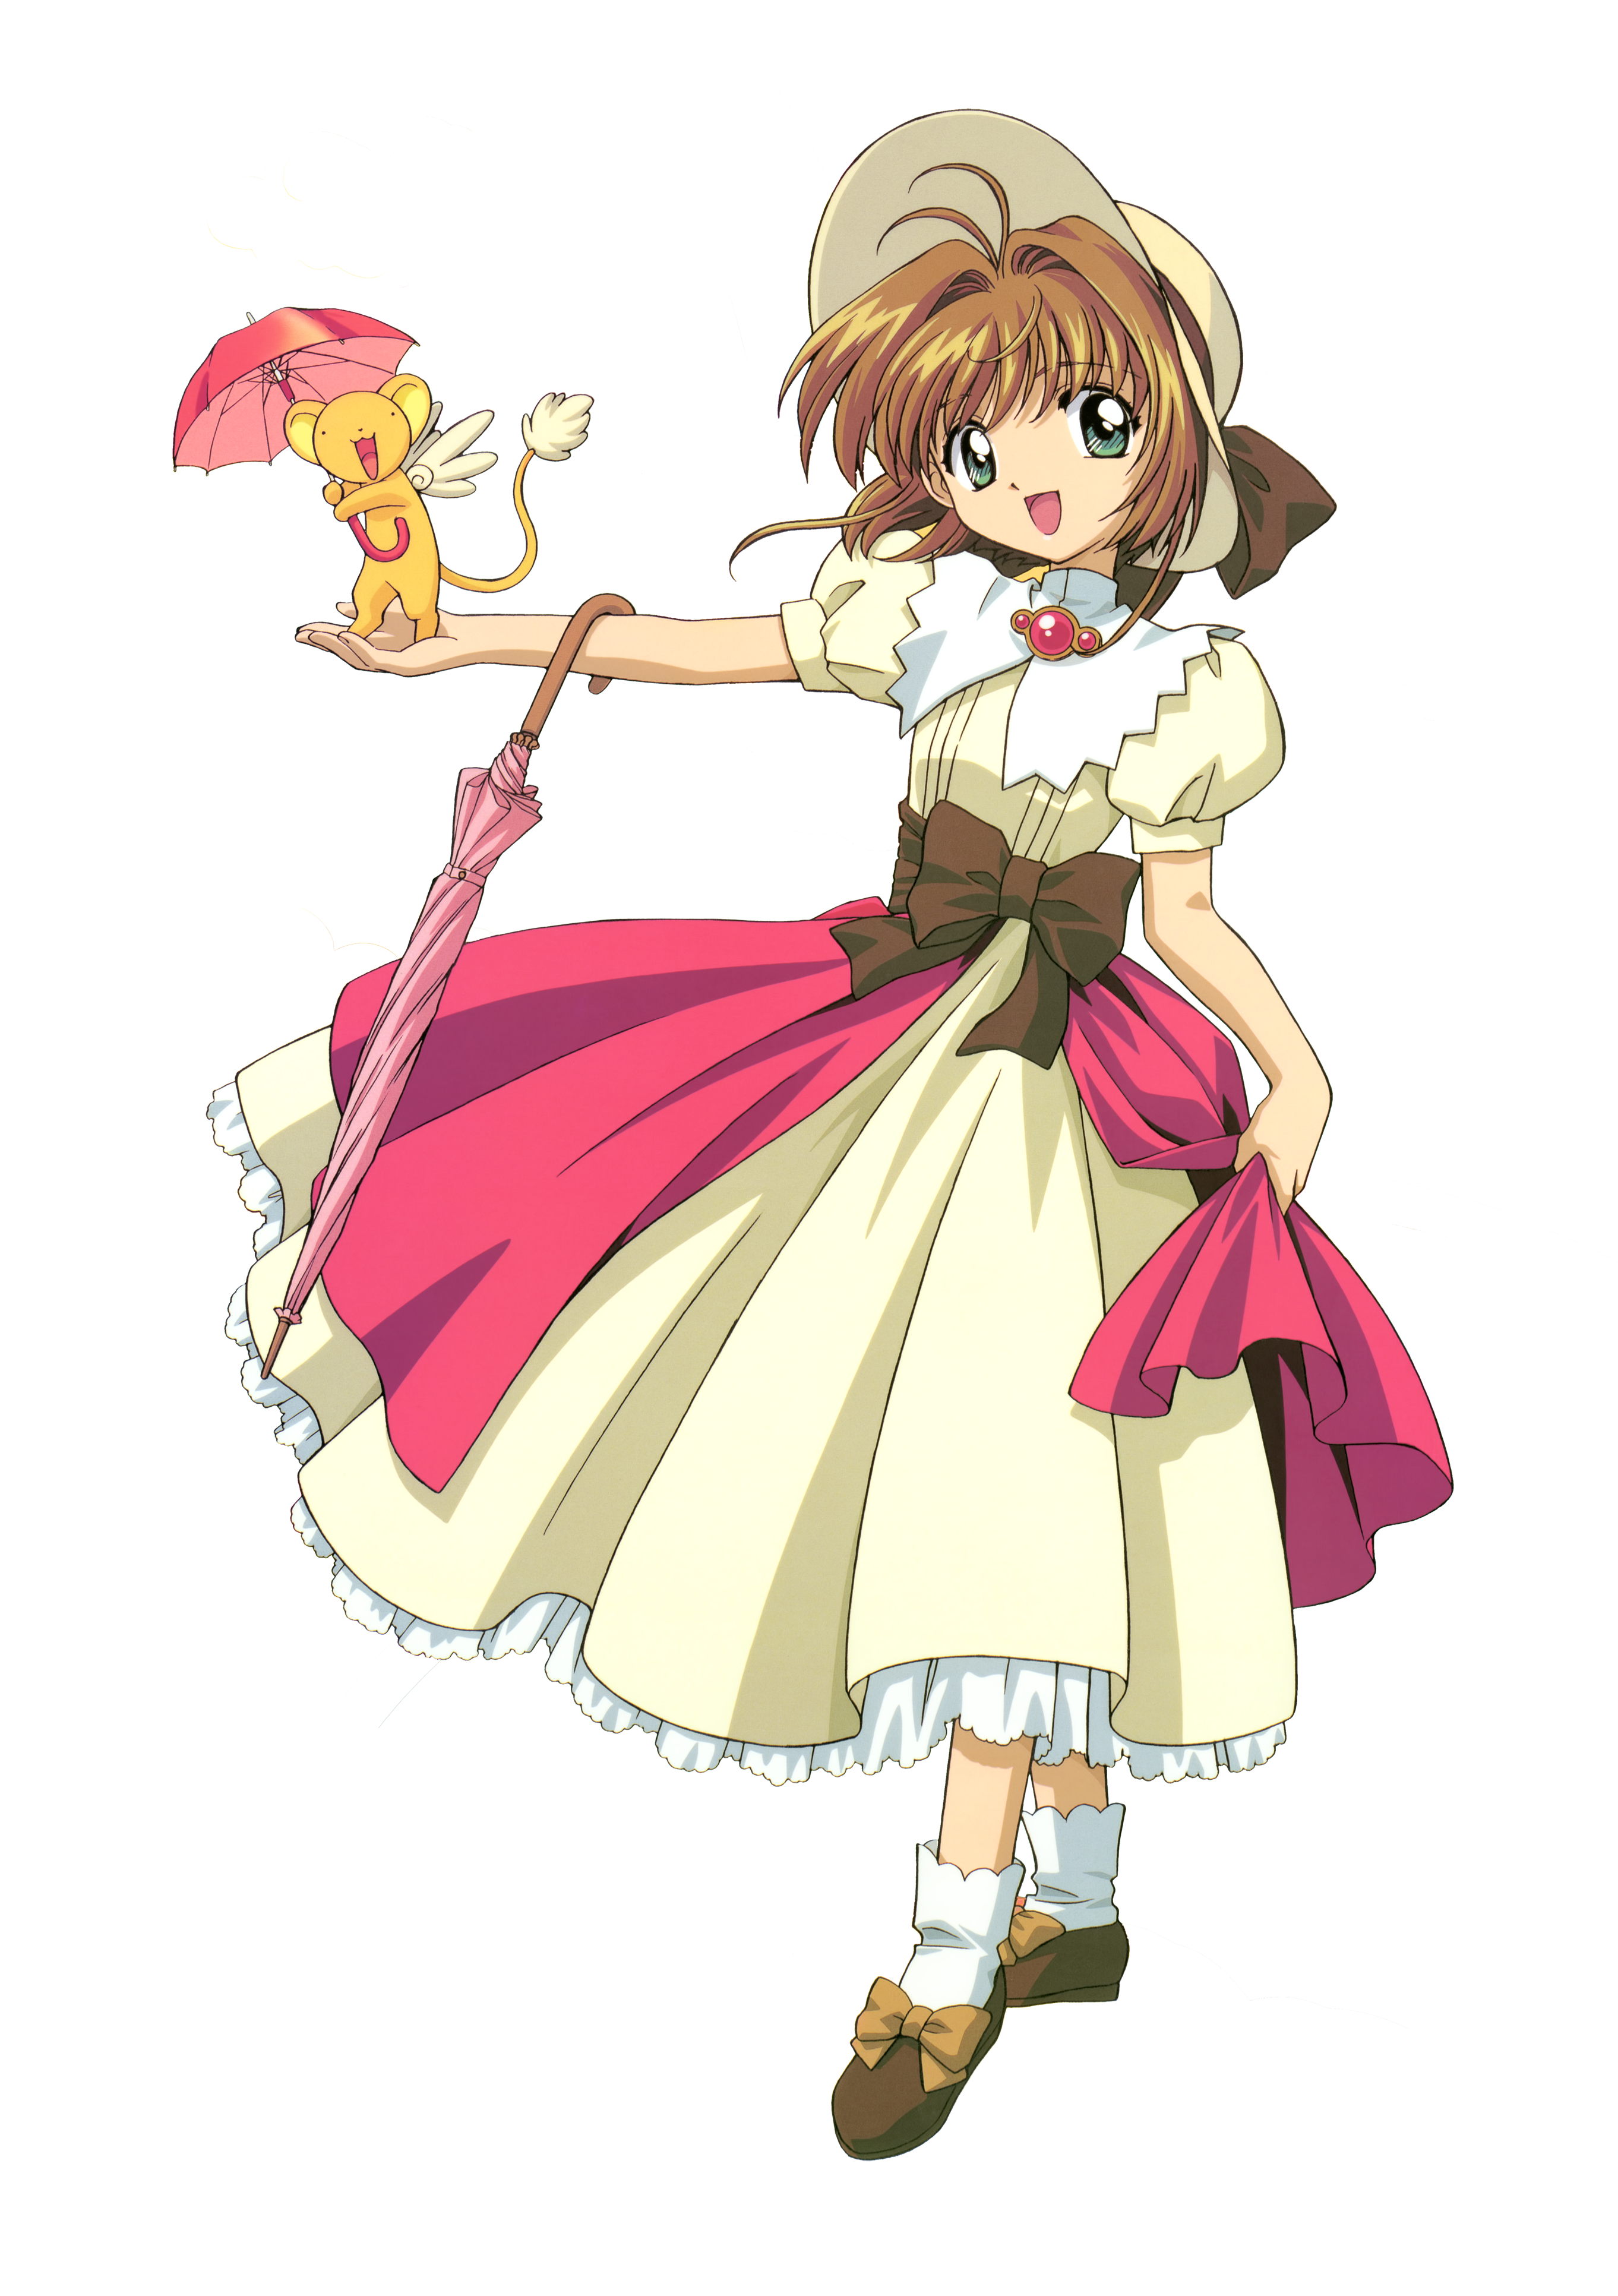 List Of Clothes And Costumes Cardcaptor Sakura Wiki Fandom Cardcaptor Sakura Sakura Card Cardcaptor